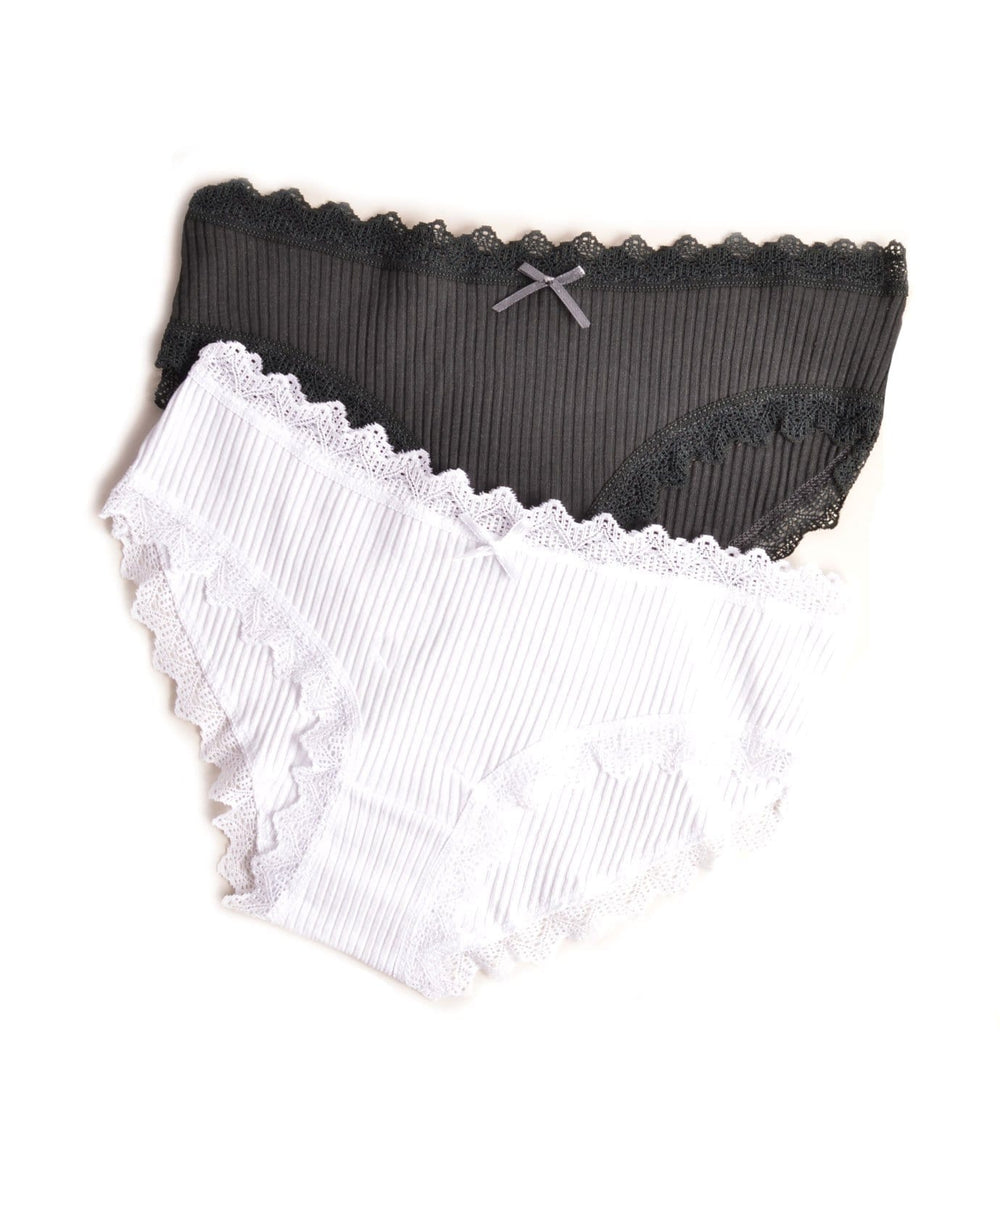 Vision Intimates Stripes & Lace Hipster Panty